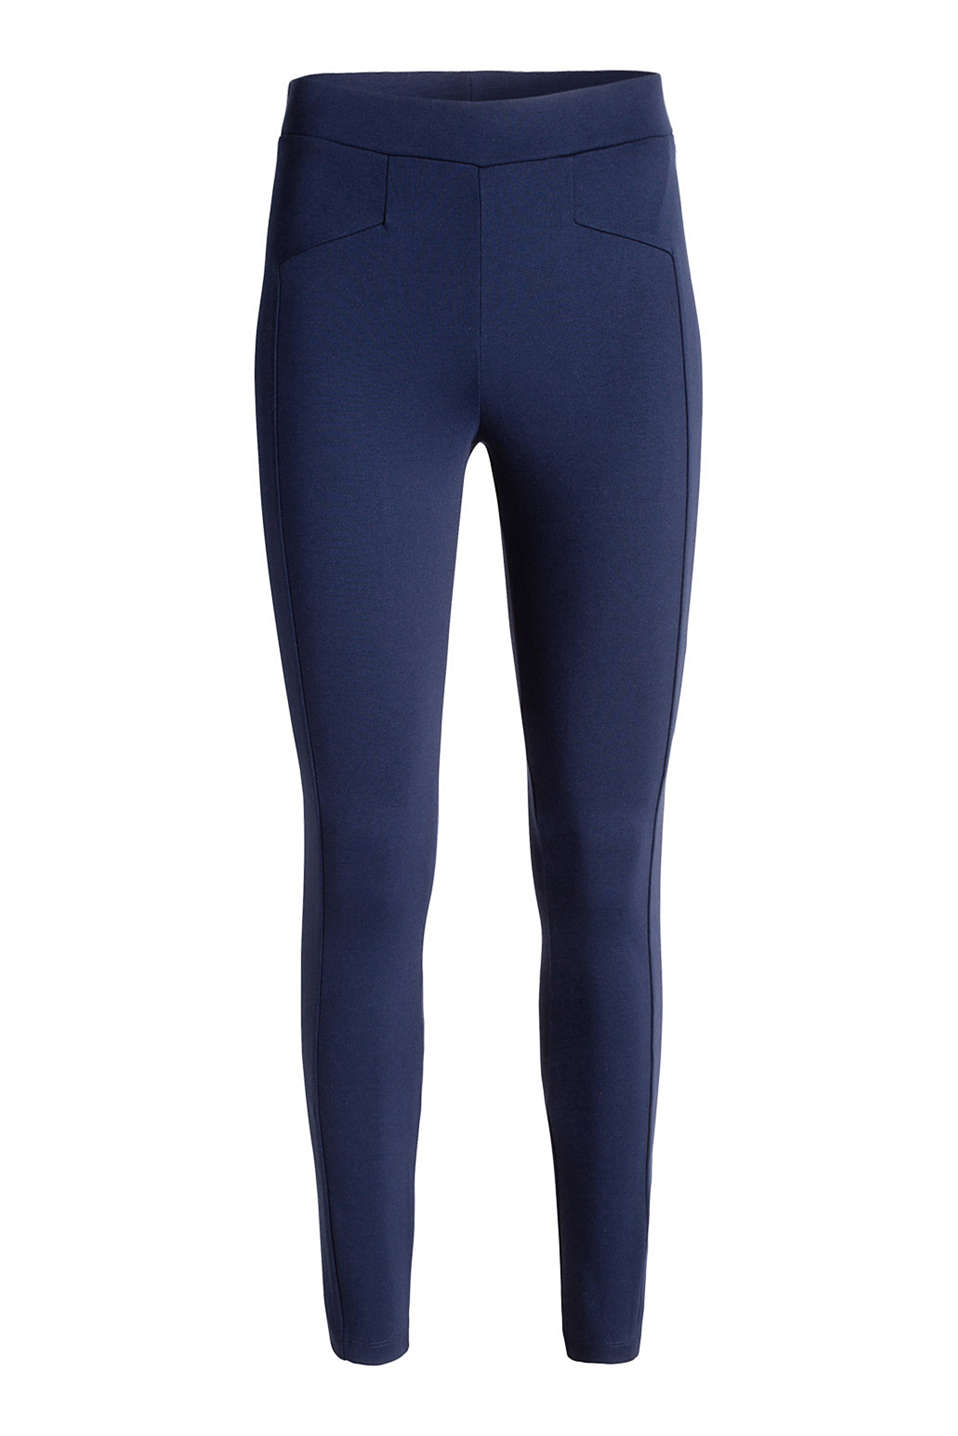 Esprit - Stretchige Leggings aus festem Jersey